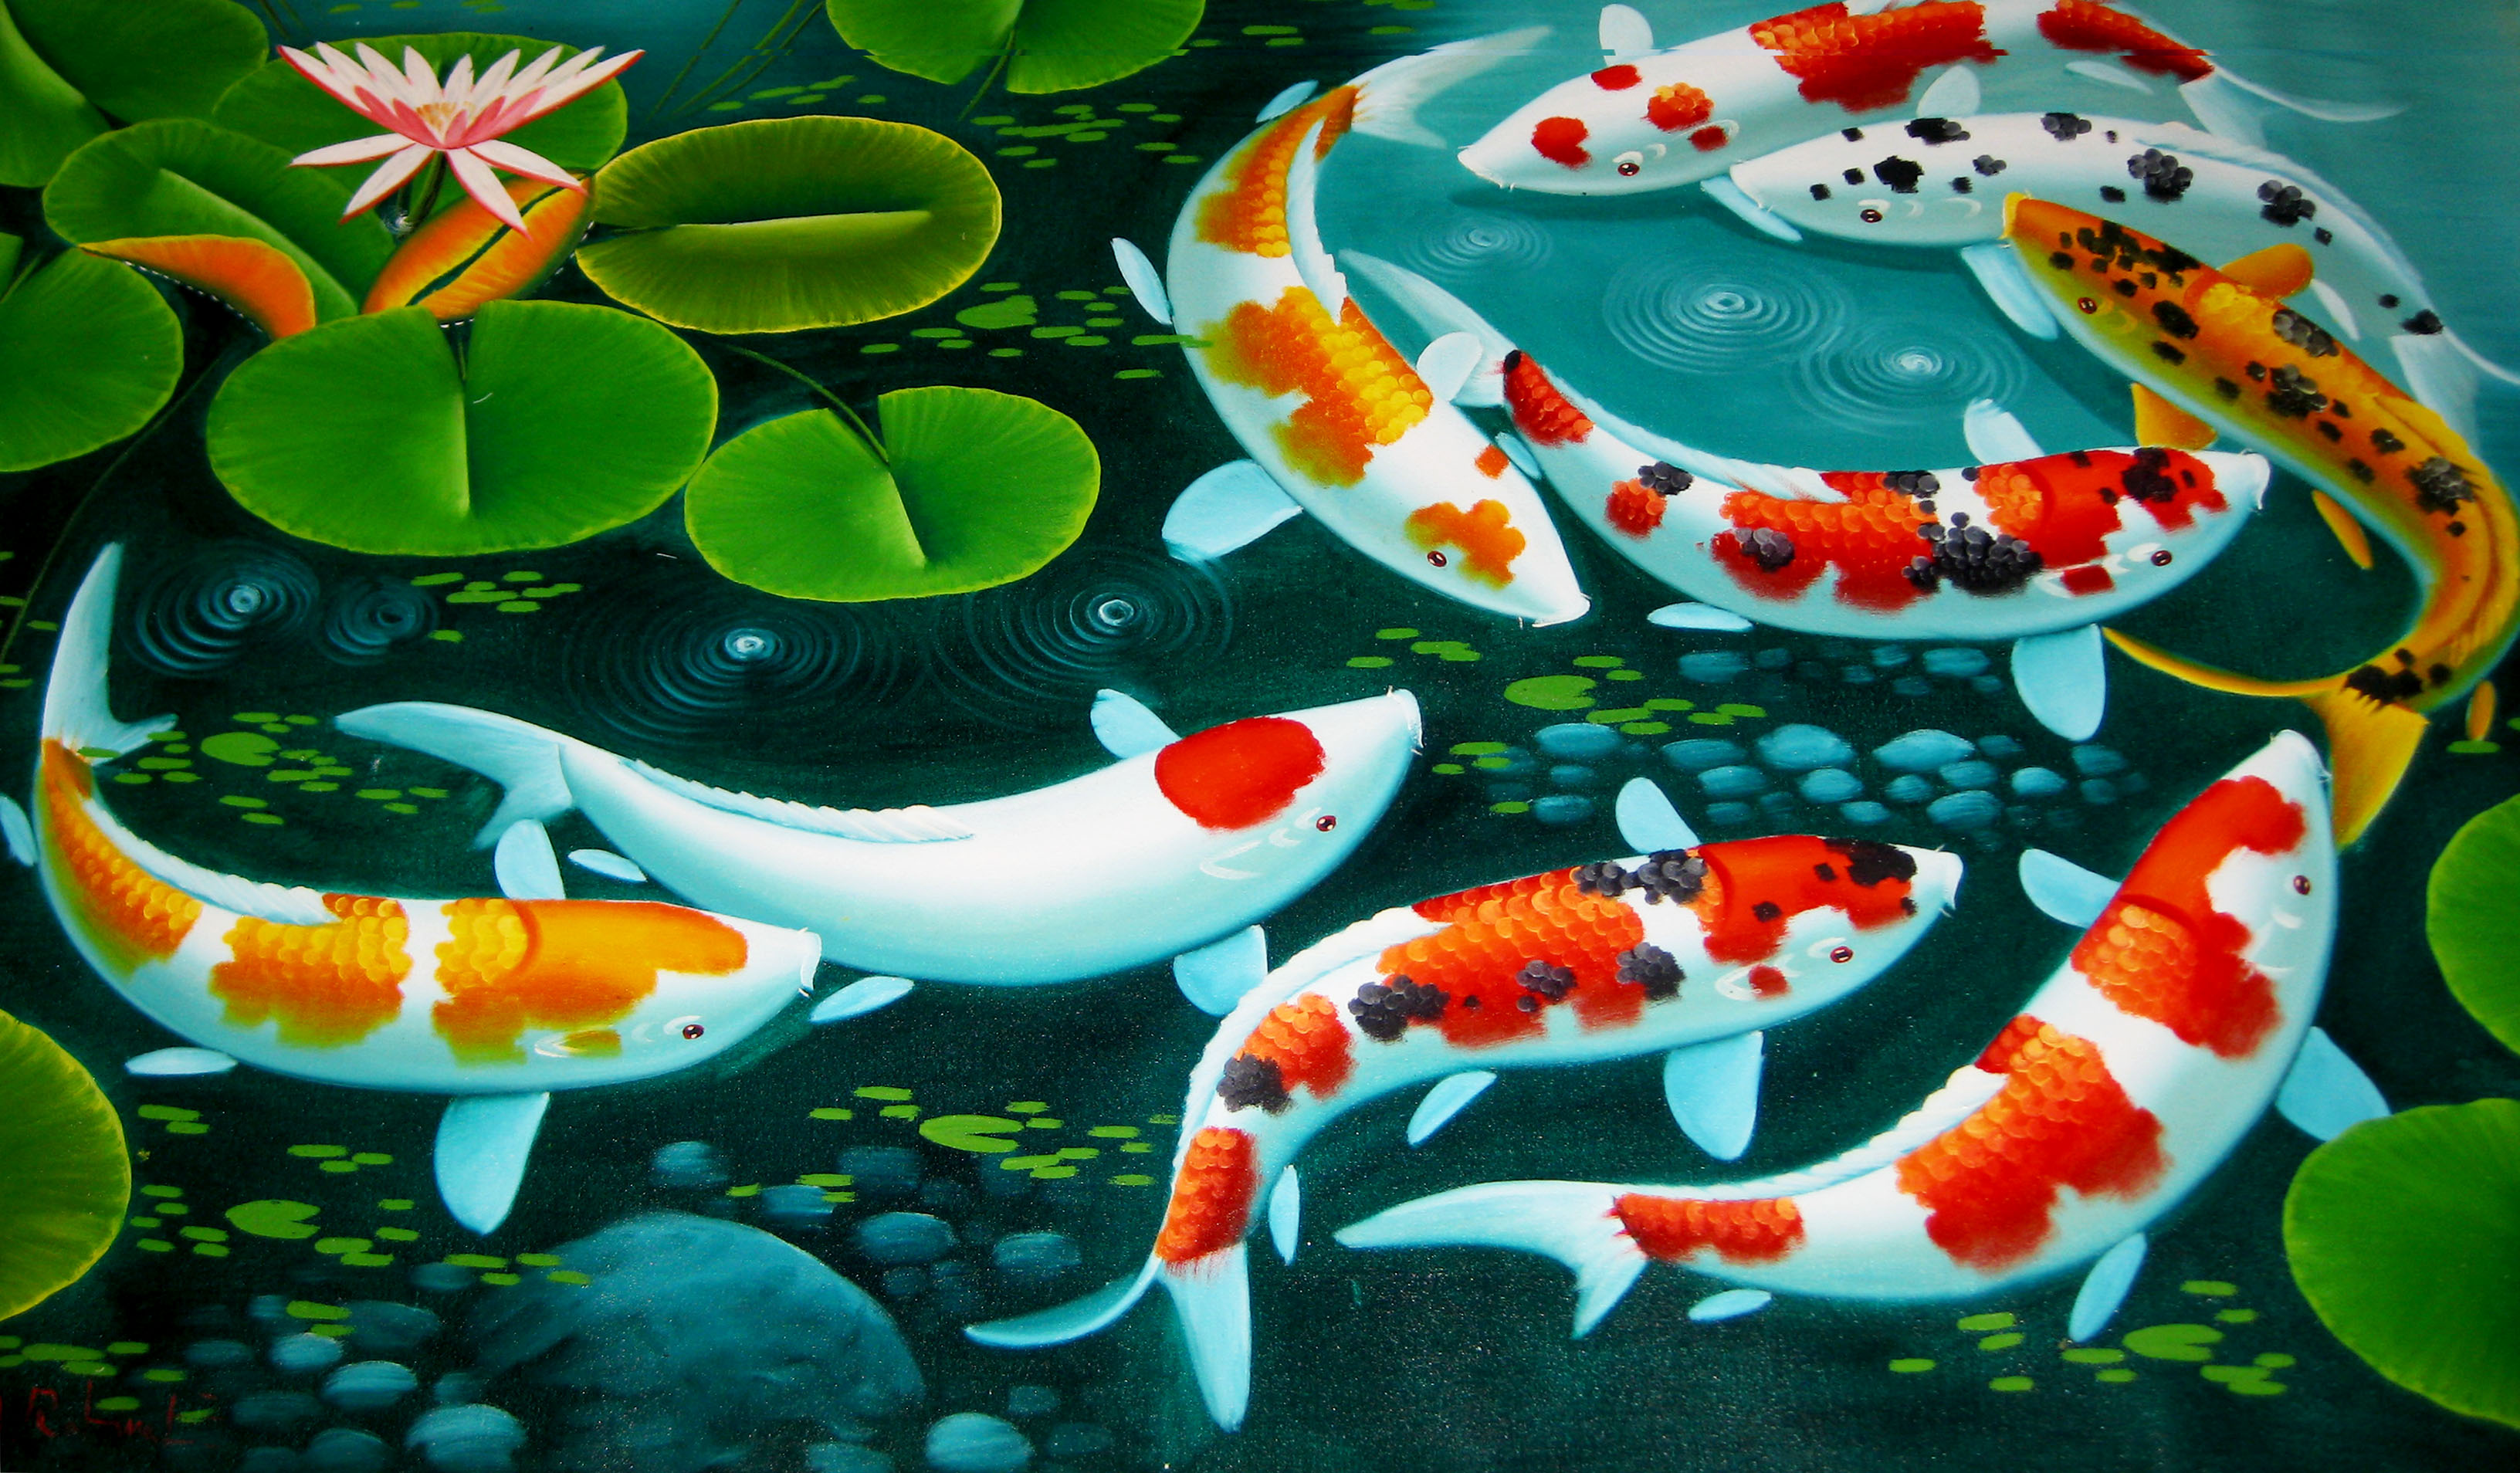 Wallpaper koi fish wallpapersafari for Pics of koi fish